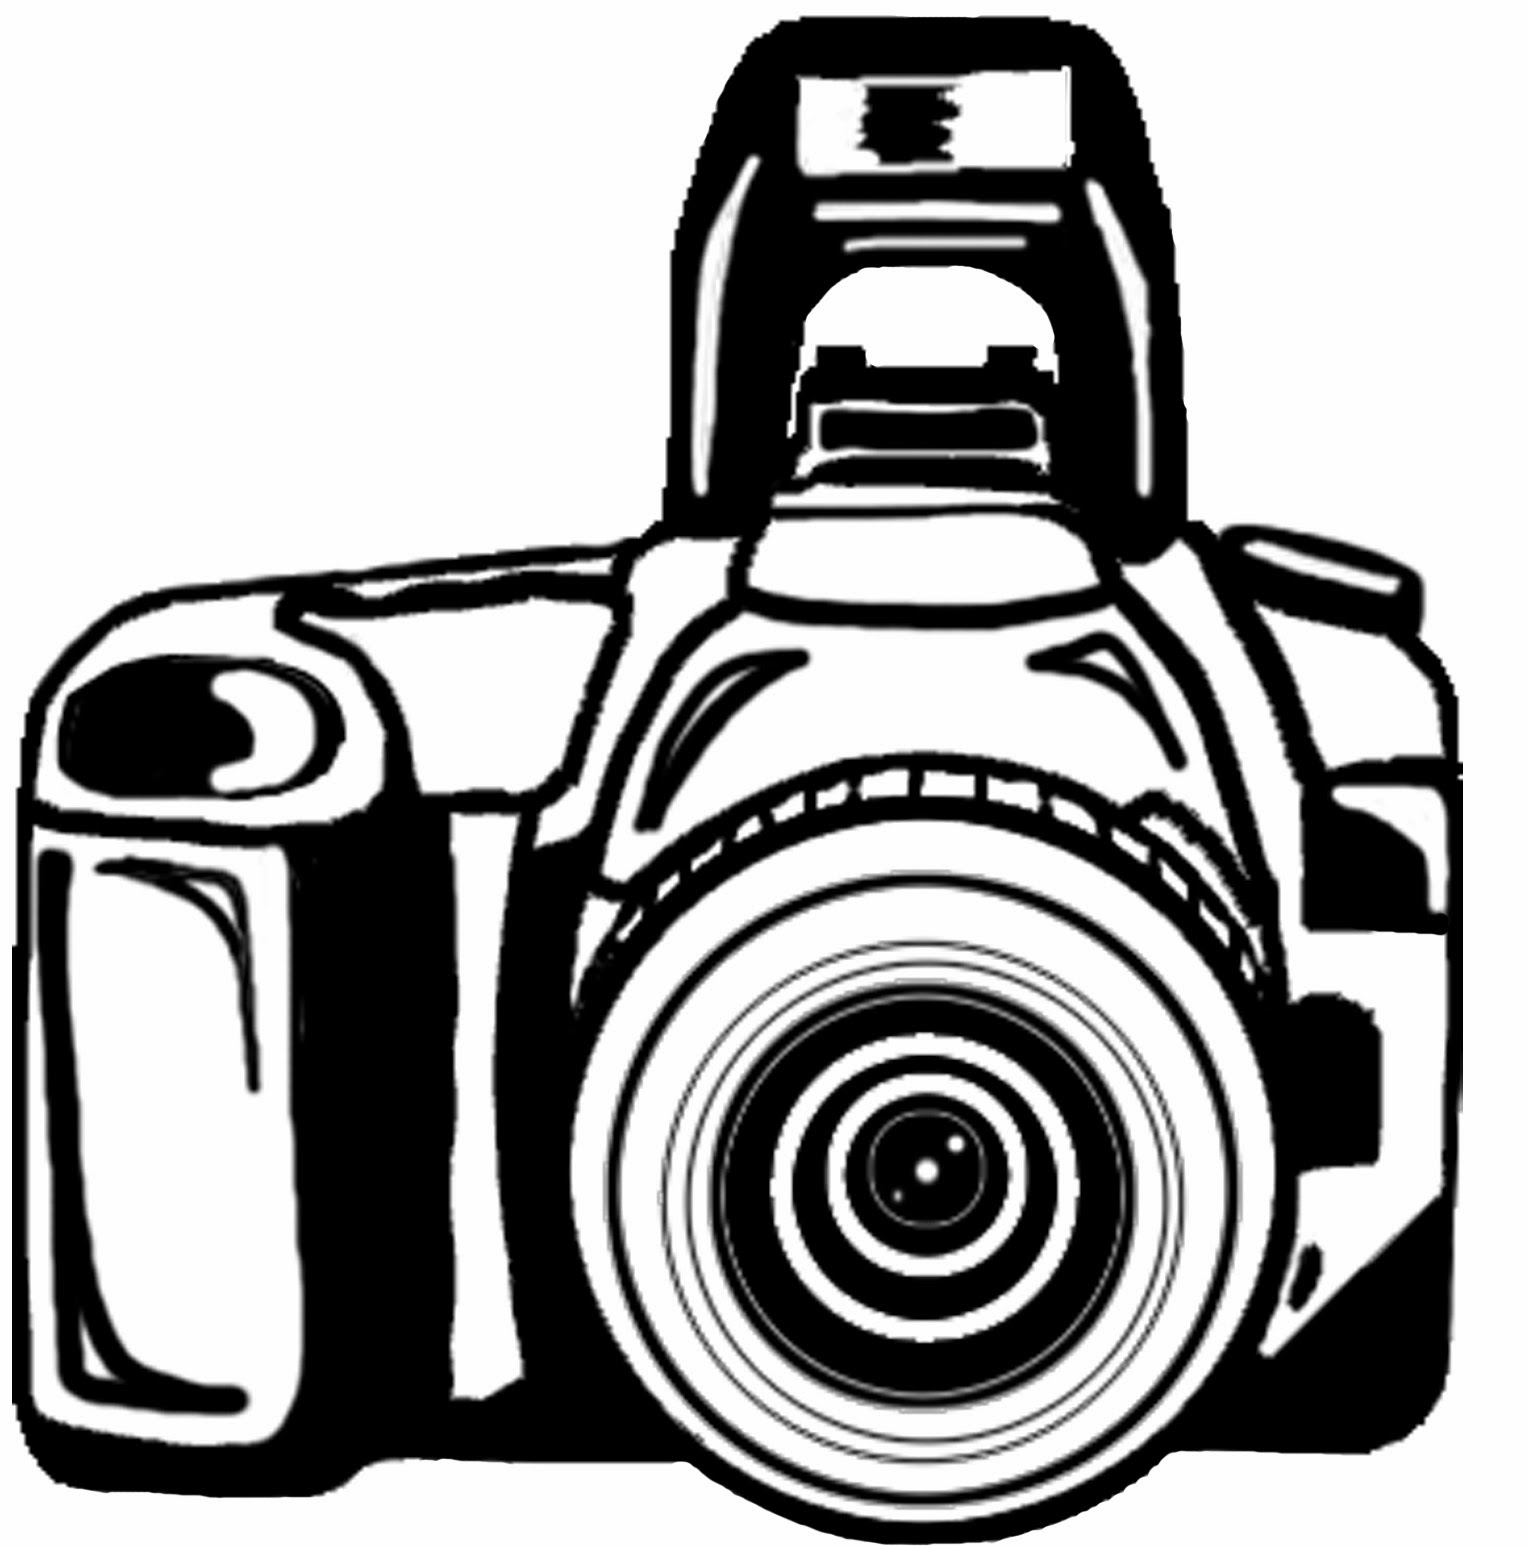 Camera clipart photographer. Photography what is megapixel